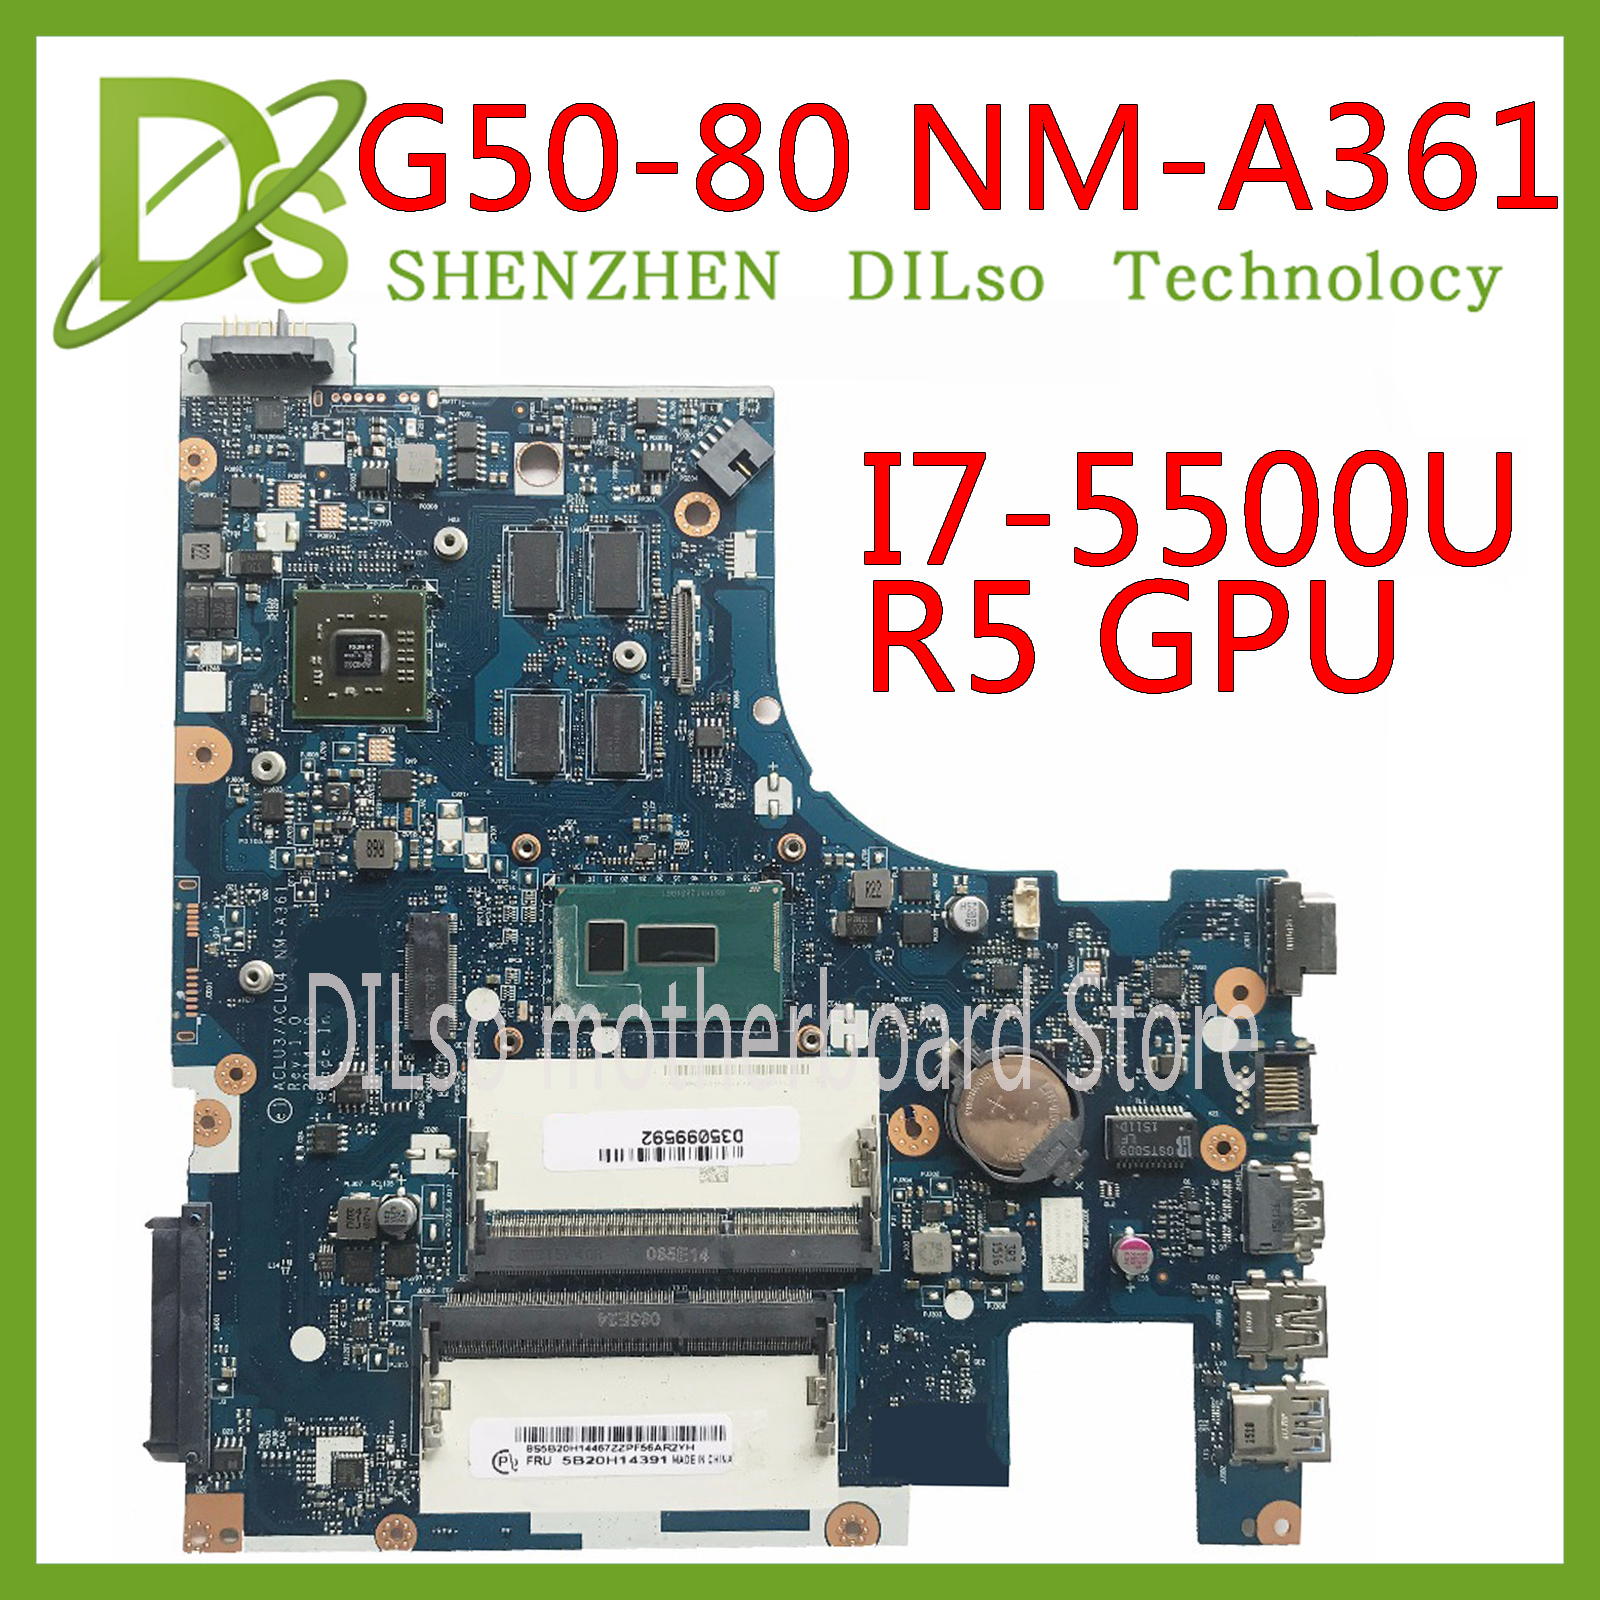 KEFU <font><b>NM</b></font>-<font><b>A361</b></font> motherboard for Lenovo G50-80 ACLU3/ACLU4 <font><b>NM</b></font>-<font><b>A361</b></font> PM laptop motherboard notebook I7-5500 CPU original Test image